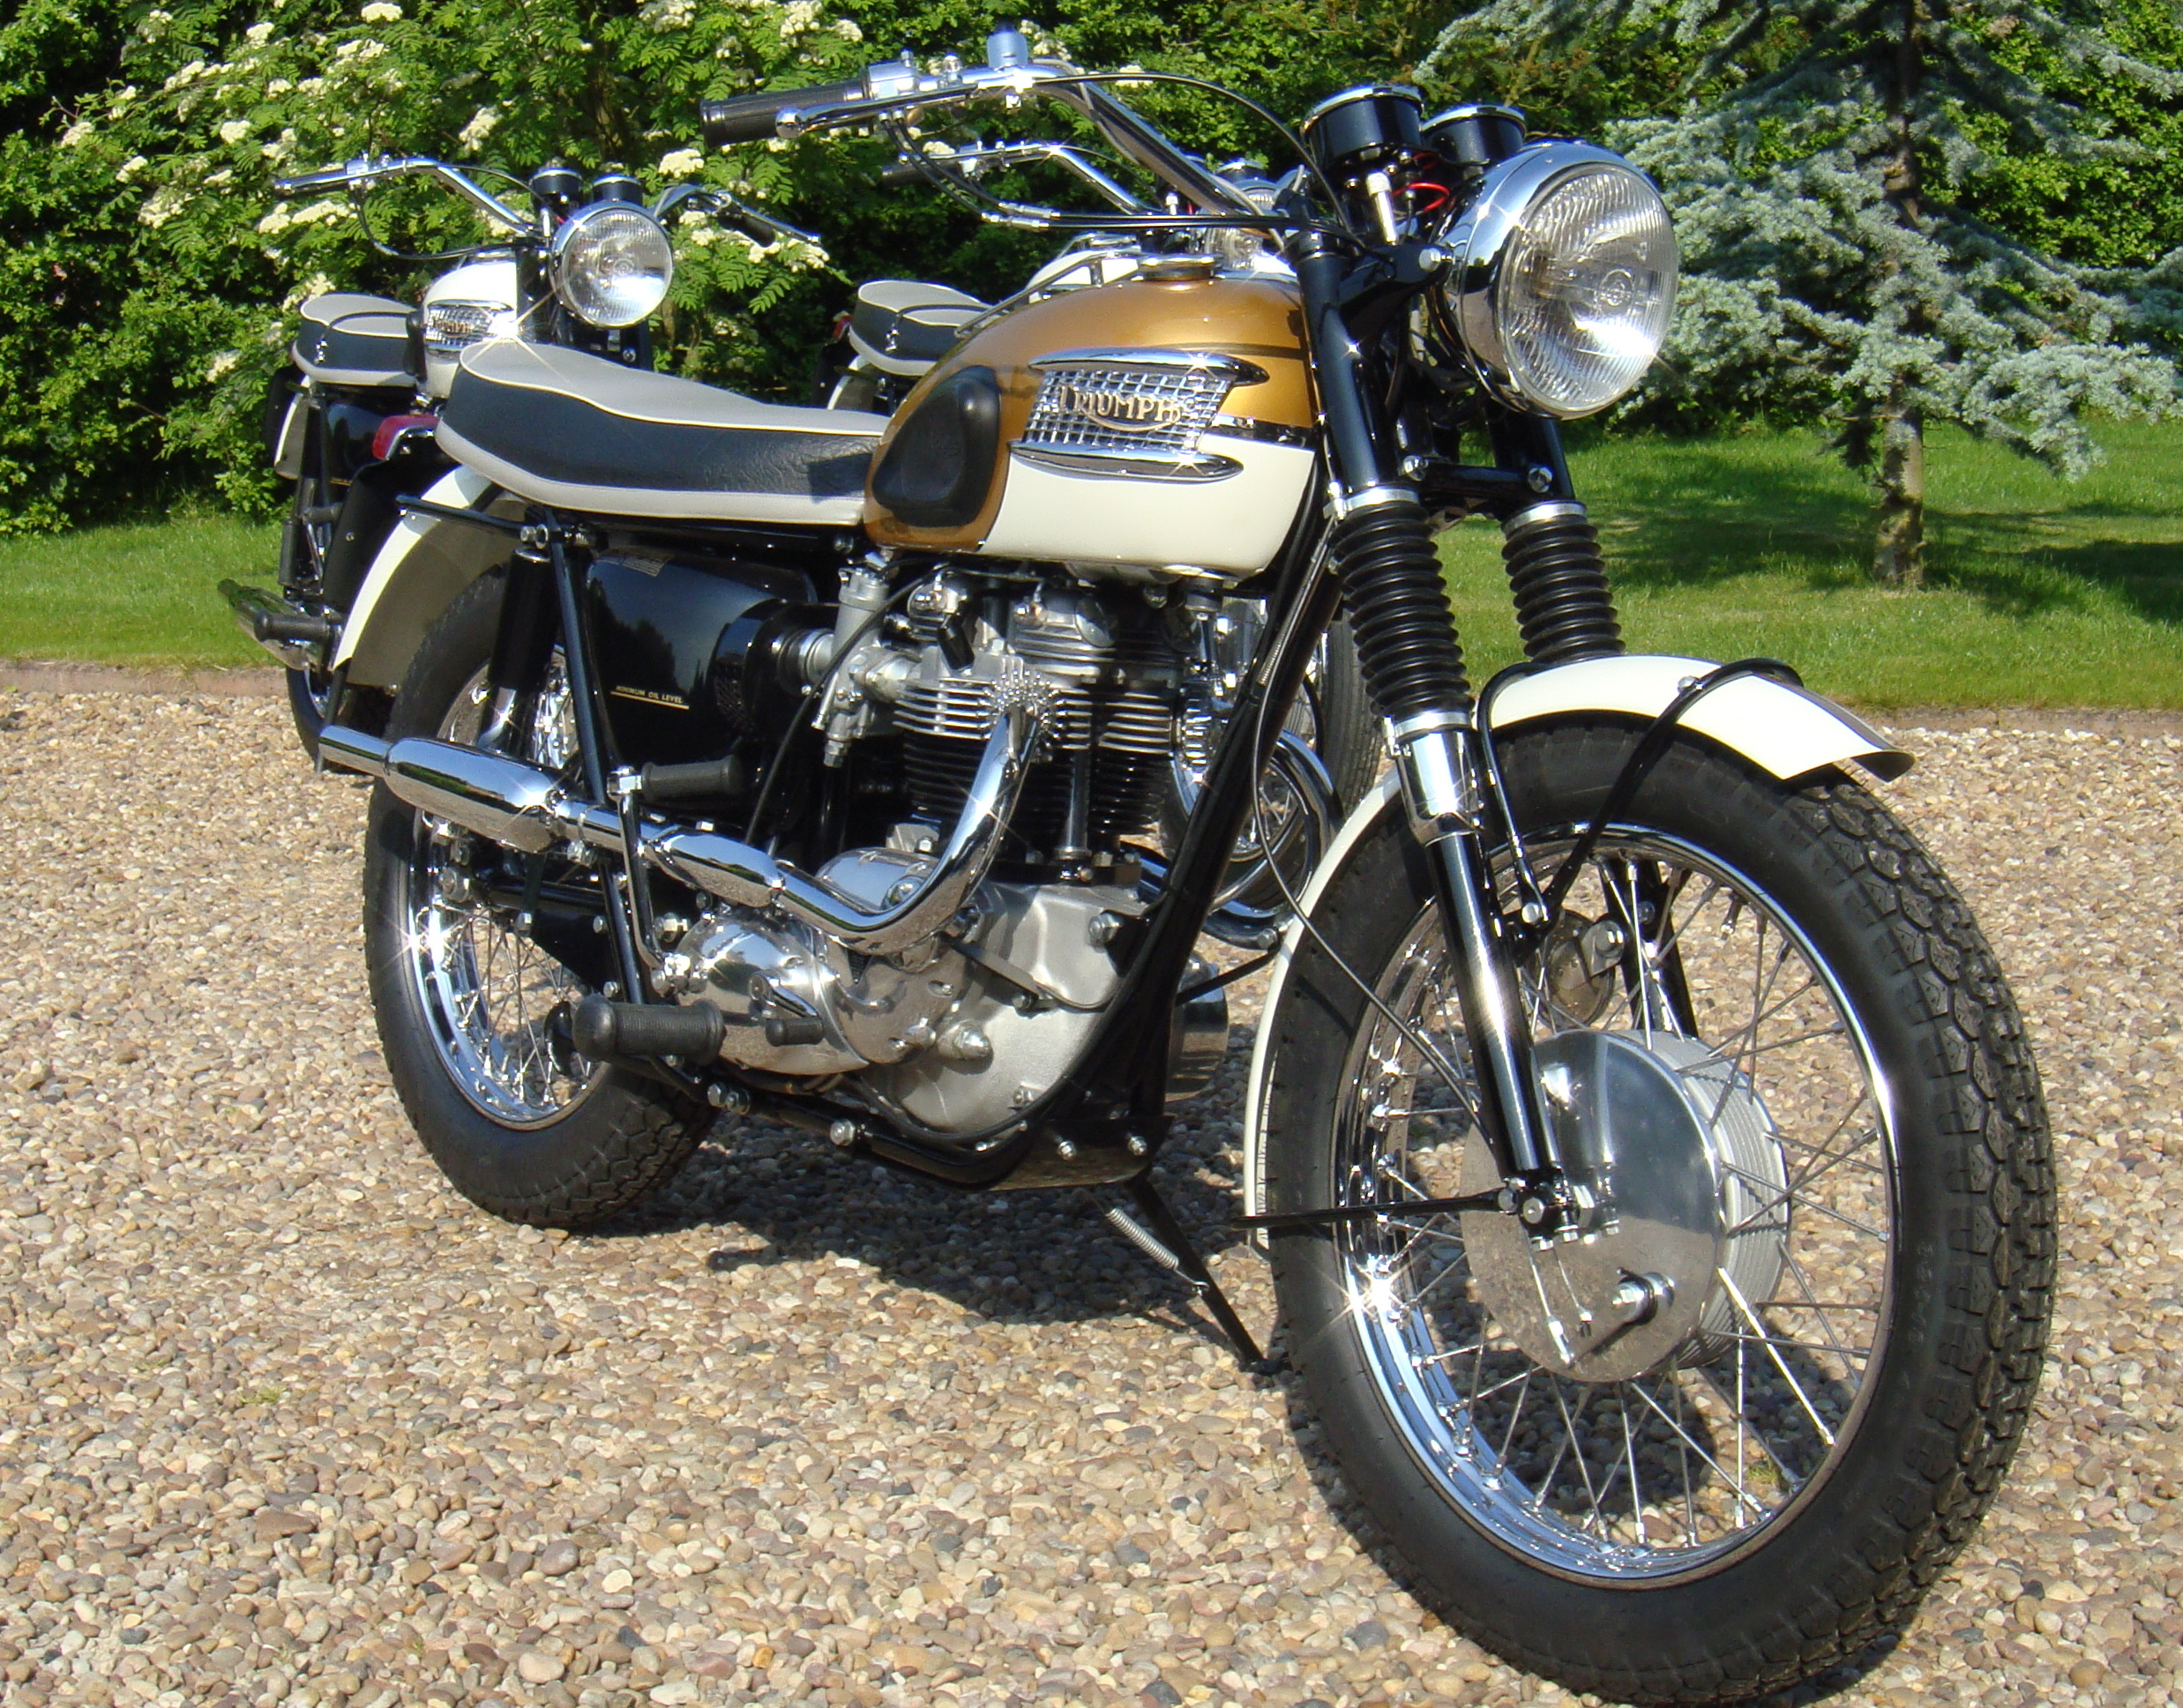 Showthread furthermore Wiring Diagram For Pocket Bike as well Triumph Wiring Diagram For A 1973 Bonneville further Triumph Bonneville Fuel Filter besides Triumphbonneville120 co. on 1967 triumph 650 bonneville wiring